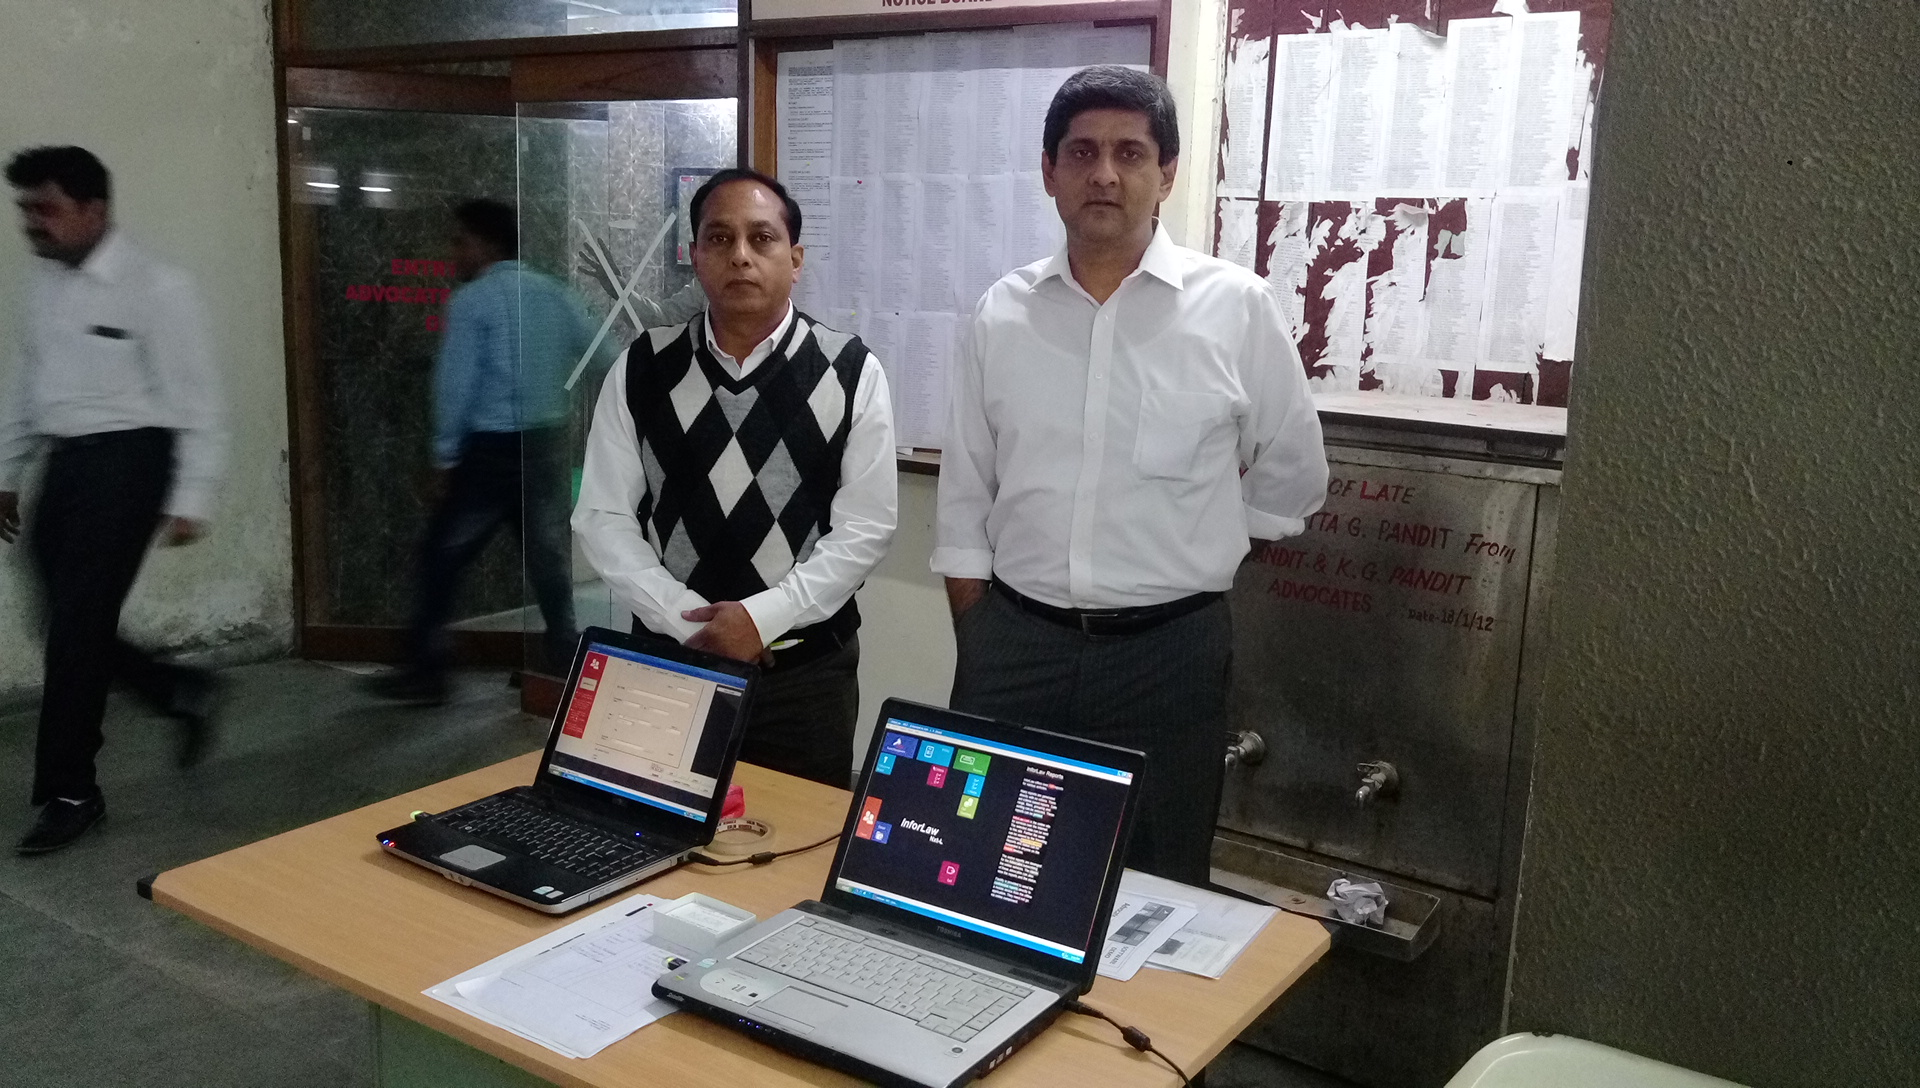 Inforcom at High Court of Gujarat for round 2 demo of InforLaw software application